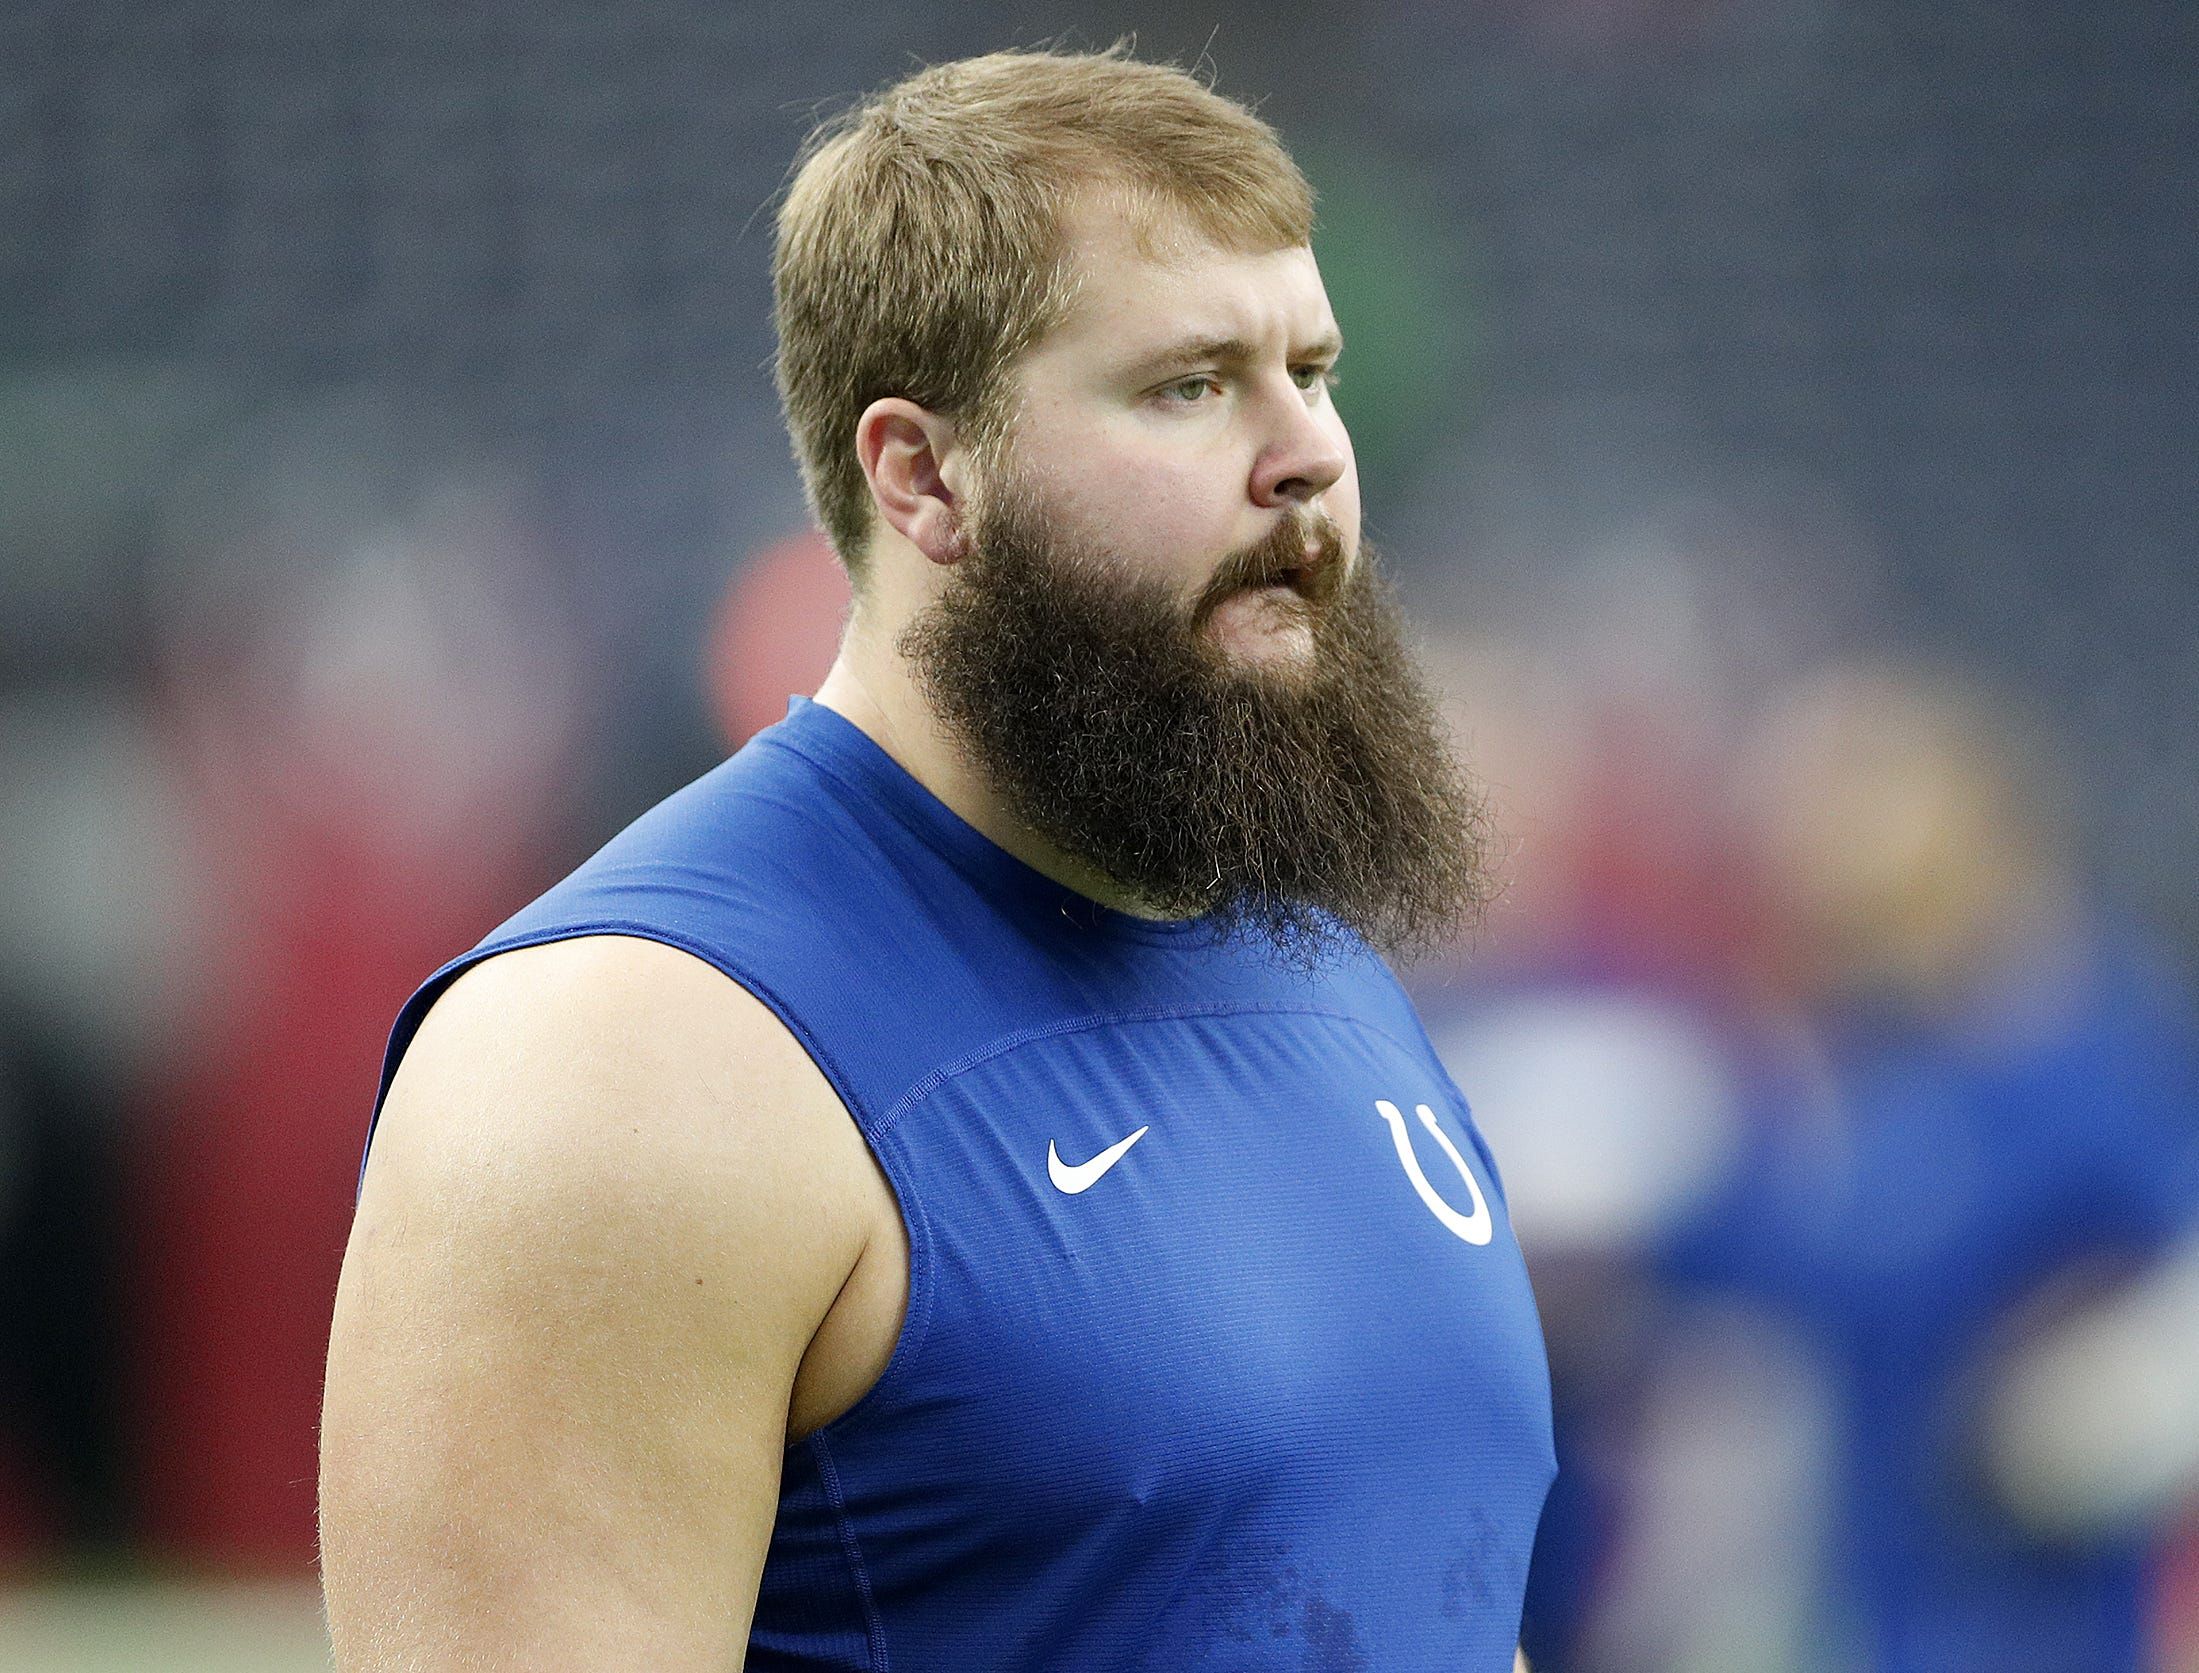 Indianapolis Colts offensive guard Mark Glowinski (64) before the start of their game against the Houston Texans at NRG Stadium in Houston, TX., on Sunday, Dec. 9, 2018.